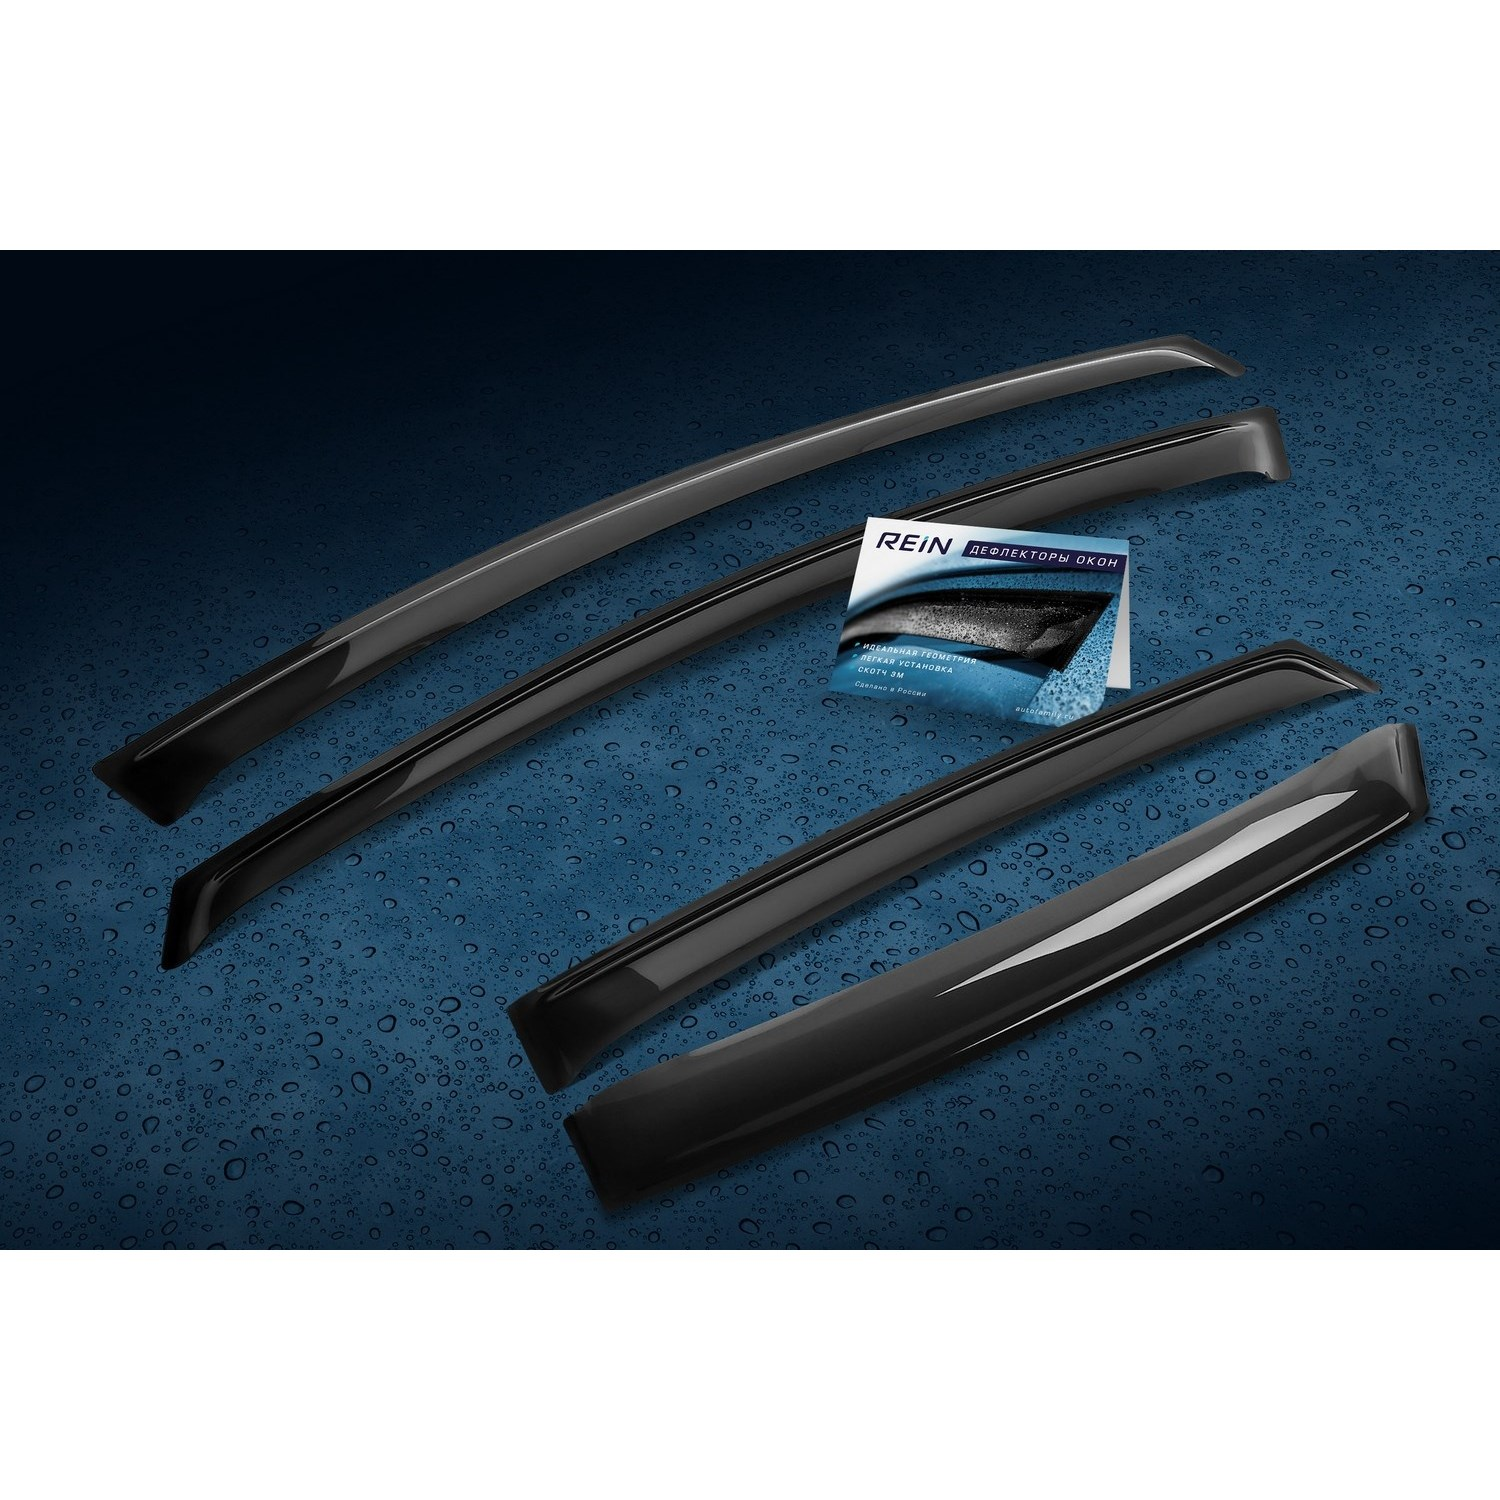 Window Deflectors For MITSUBISHI PAJERO SPORT III-2015, Patch, Scotch Tape 3 M 4 PCs REINWV958